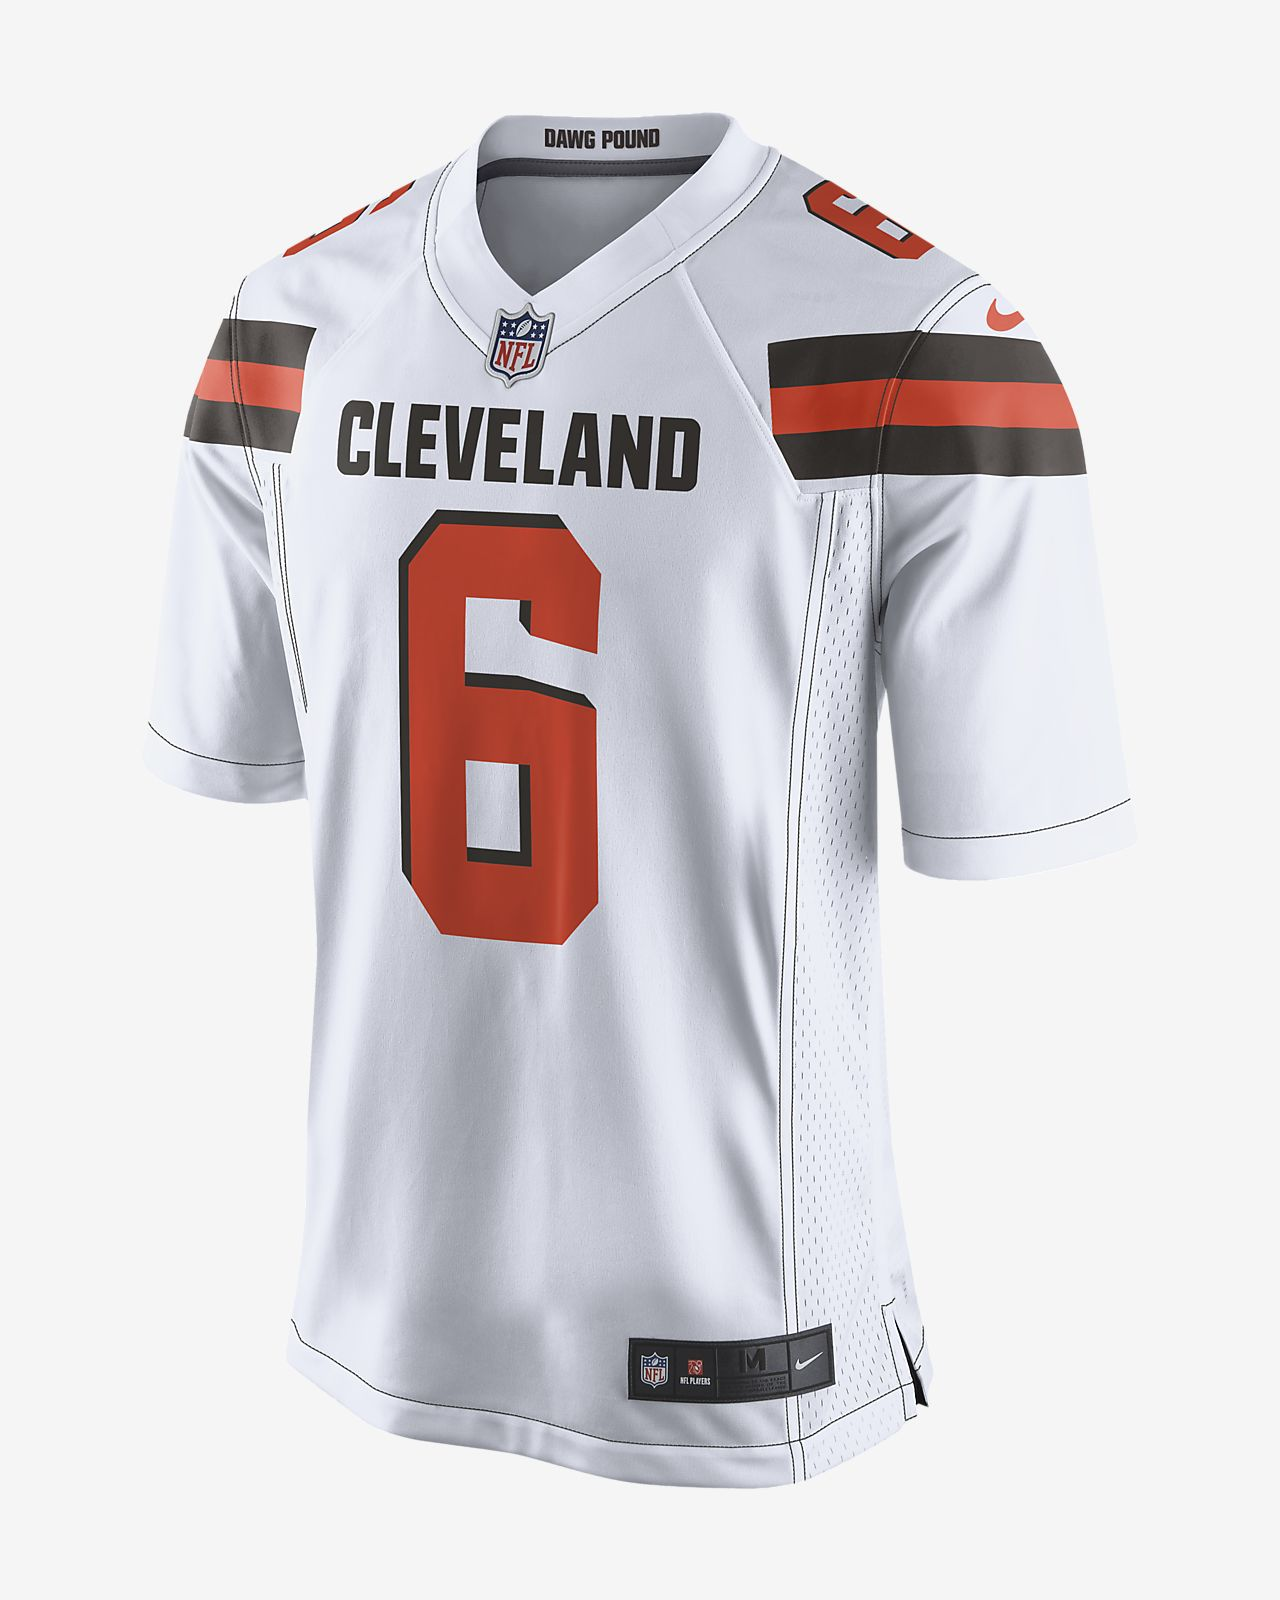 0dfa9b1f3a0 ... NFL Cleveland Browns (Baker Mayfield) Men's Game Football Jersey